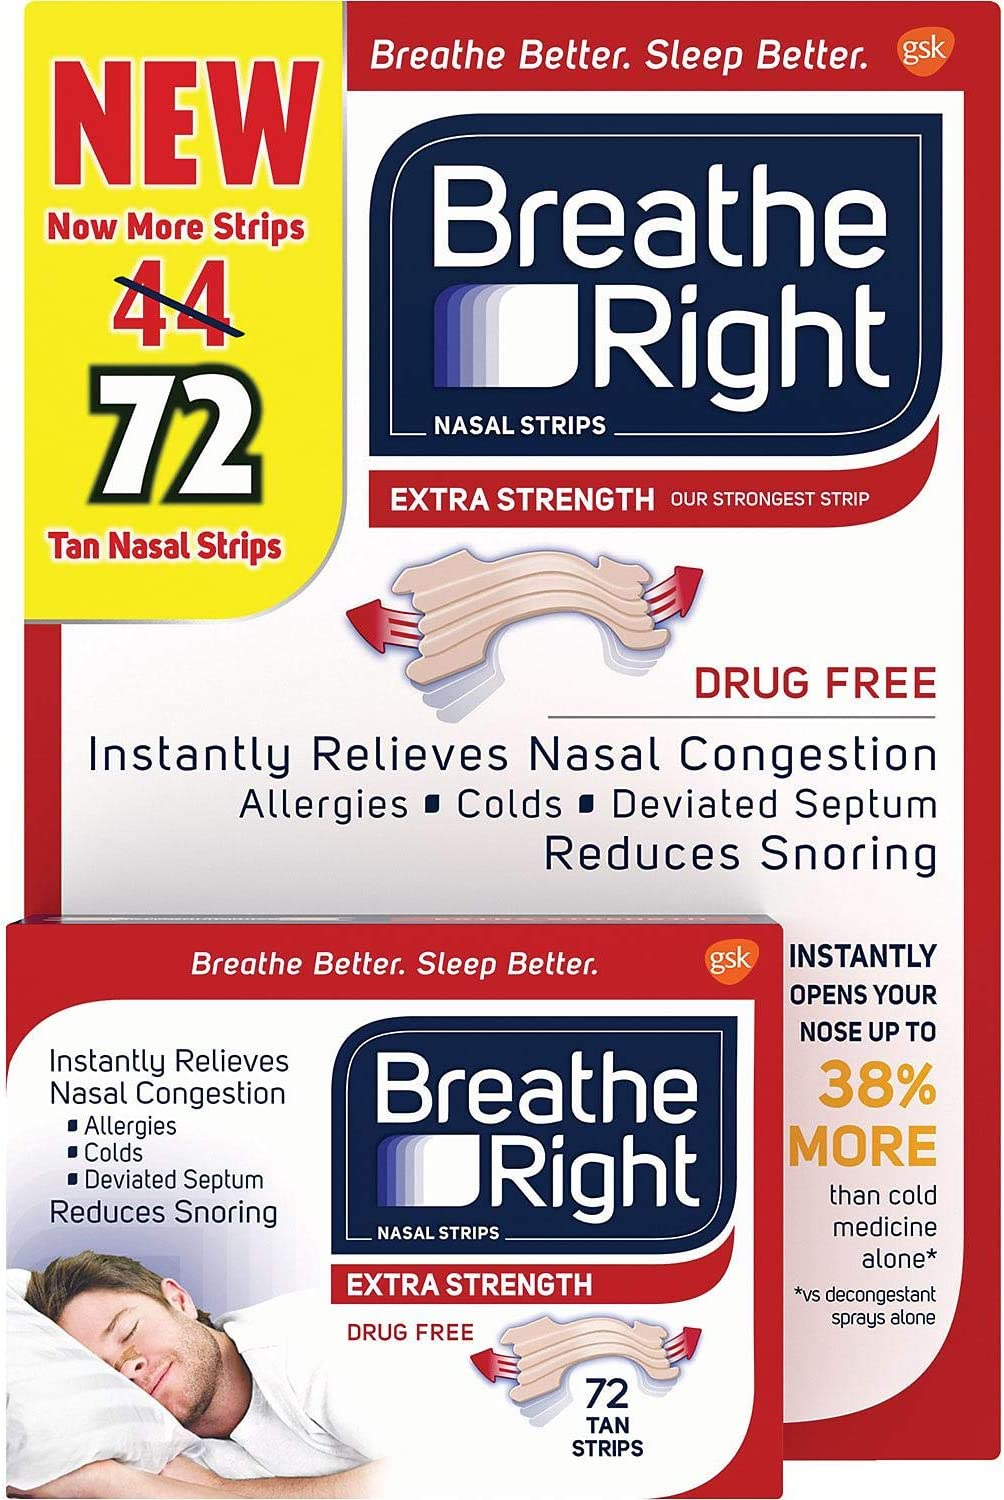 Breathe Right Extra Strength Tan Strips Reduces Snoring-Free Nasal Strips for Nasal Congestion Relief-72 Count: Sports & Outdoors